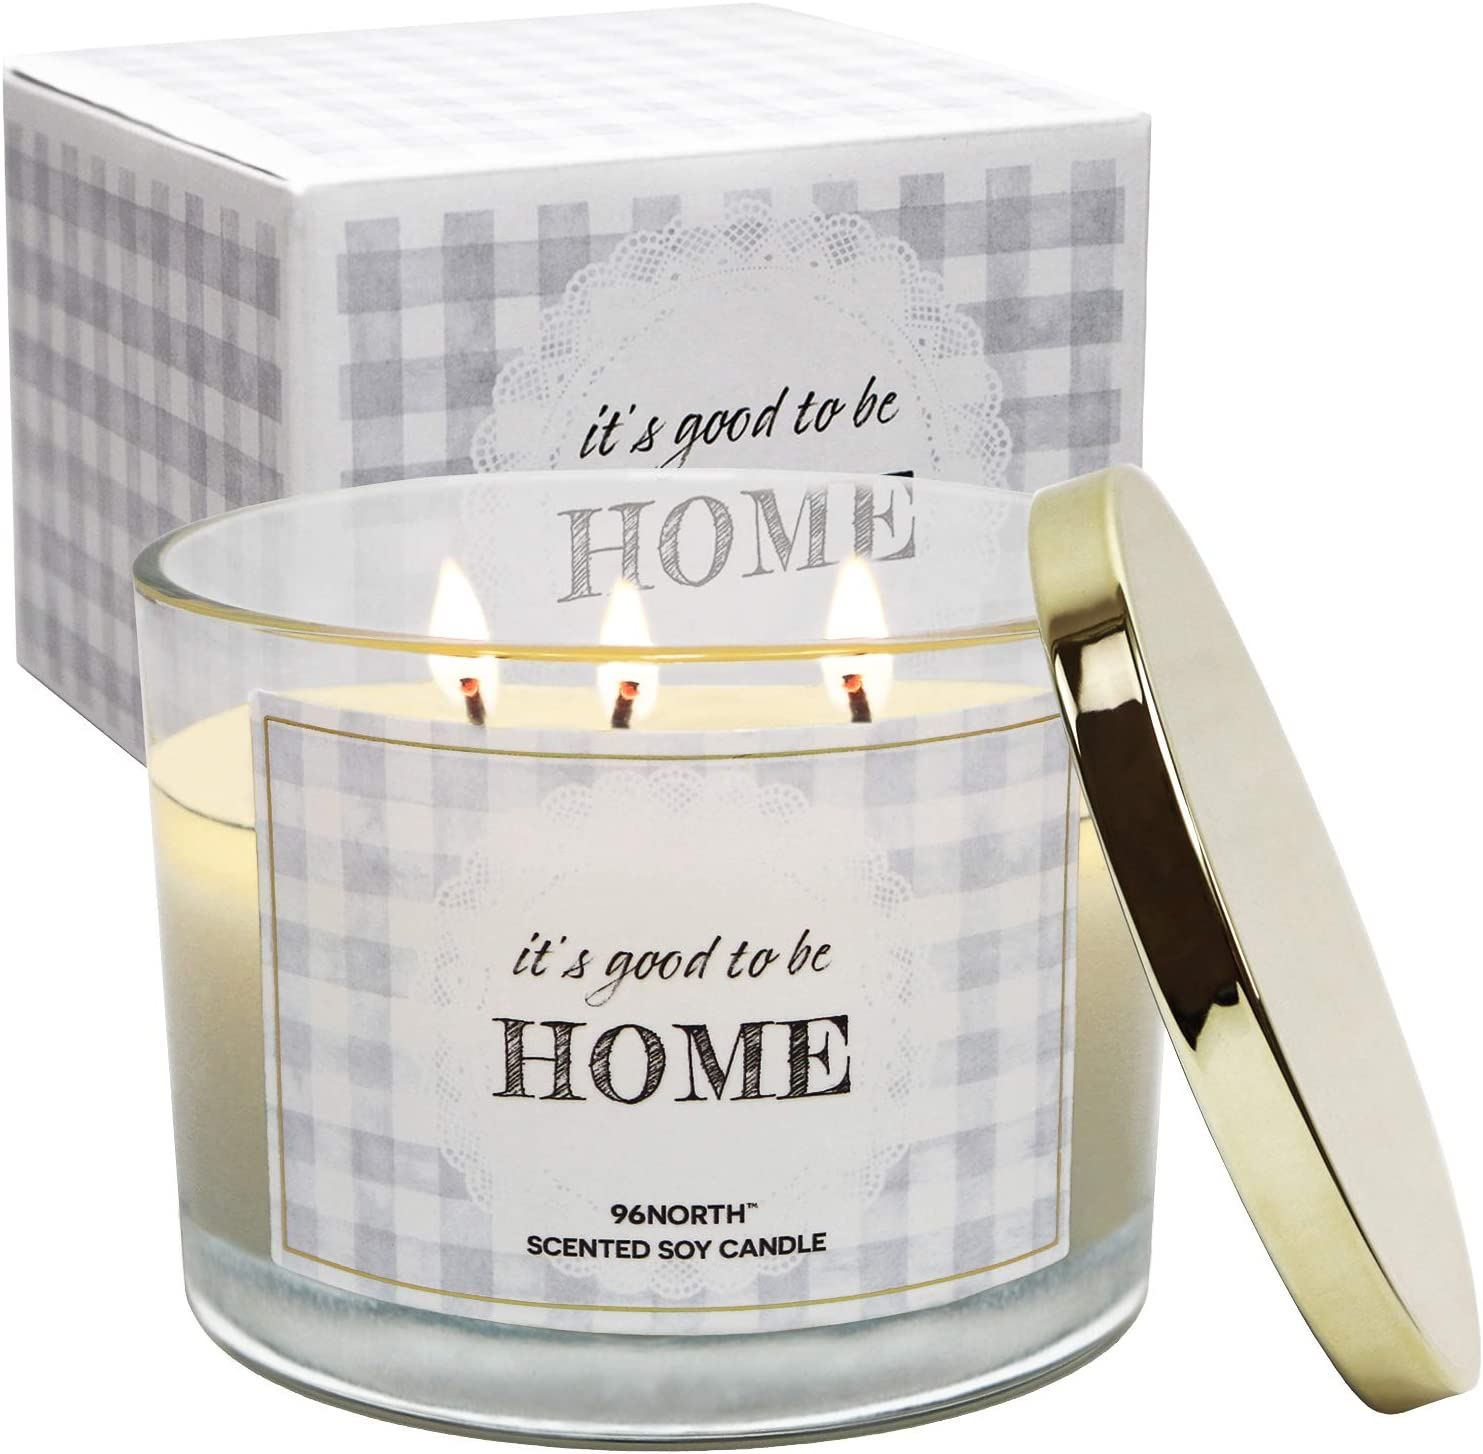 96NORTH Soy 3-Wick 14.5 OZ Home Sweet Home Candle, New Home Large Candle, New Home Gift // New Home Candles, Welcome Home Candle, Welcome to New Home Gift, Candles for Home Scented, Best Gifts Home